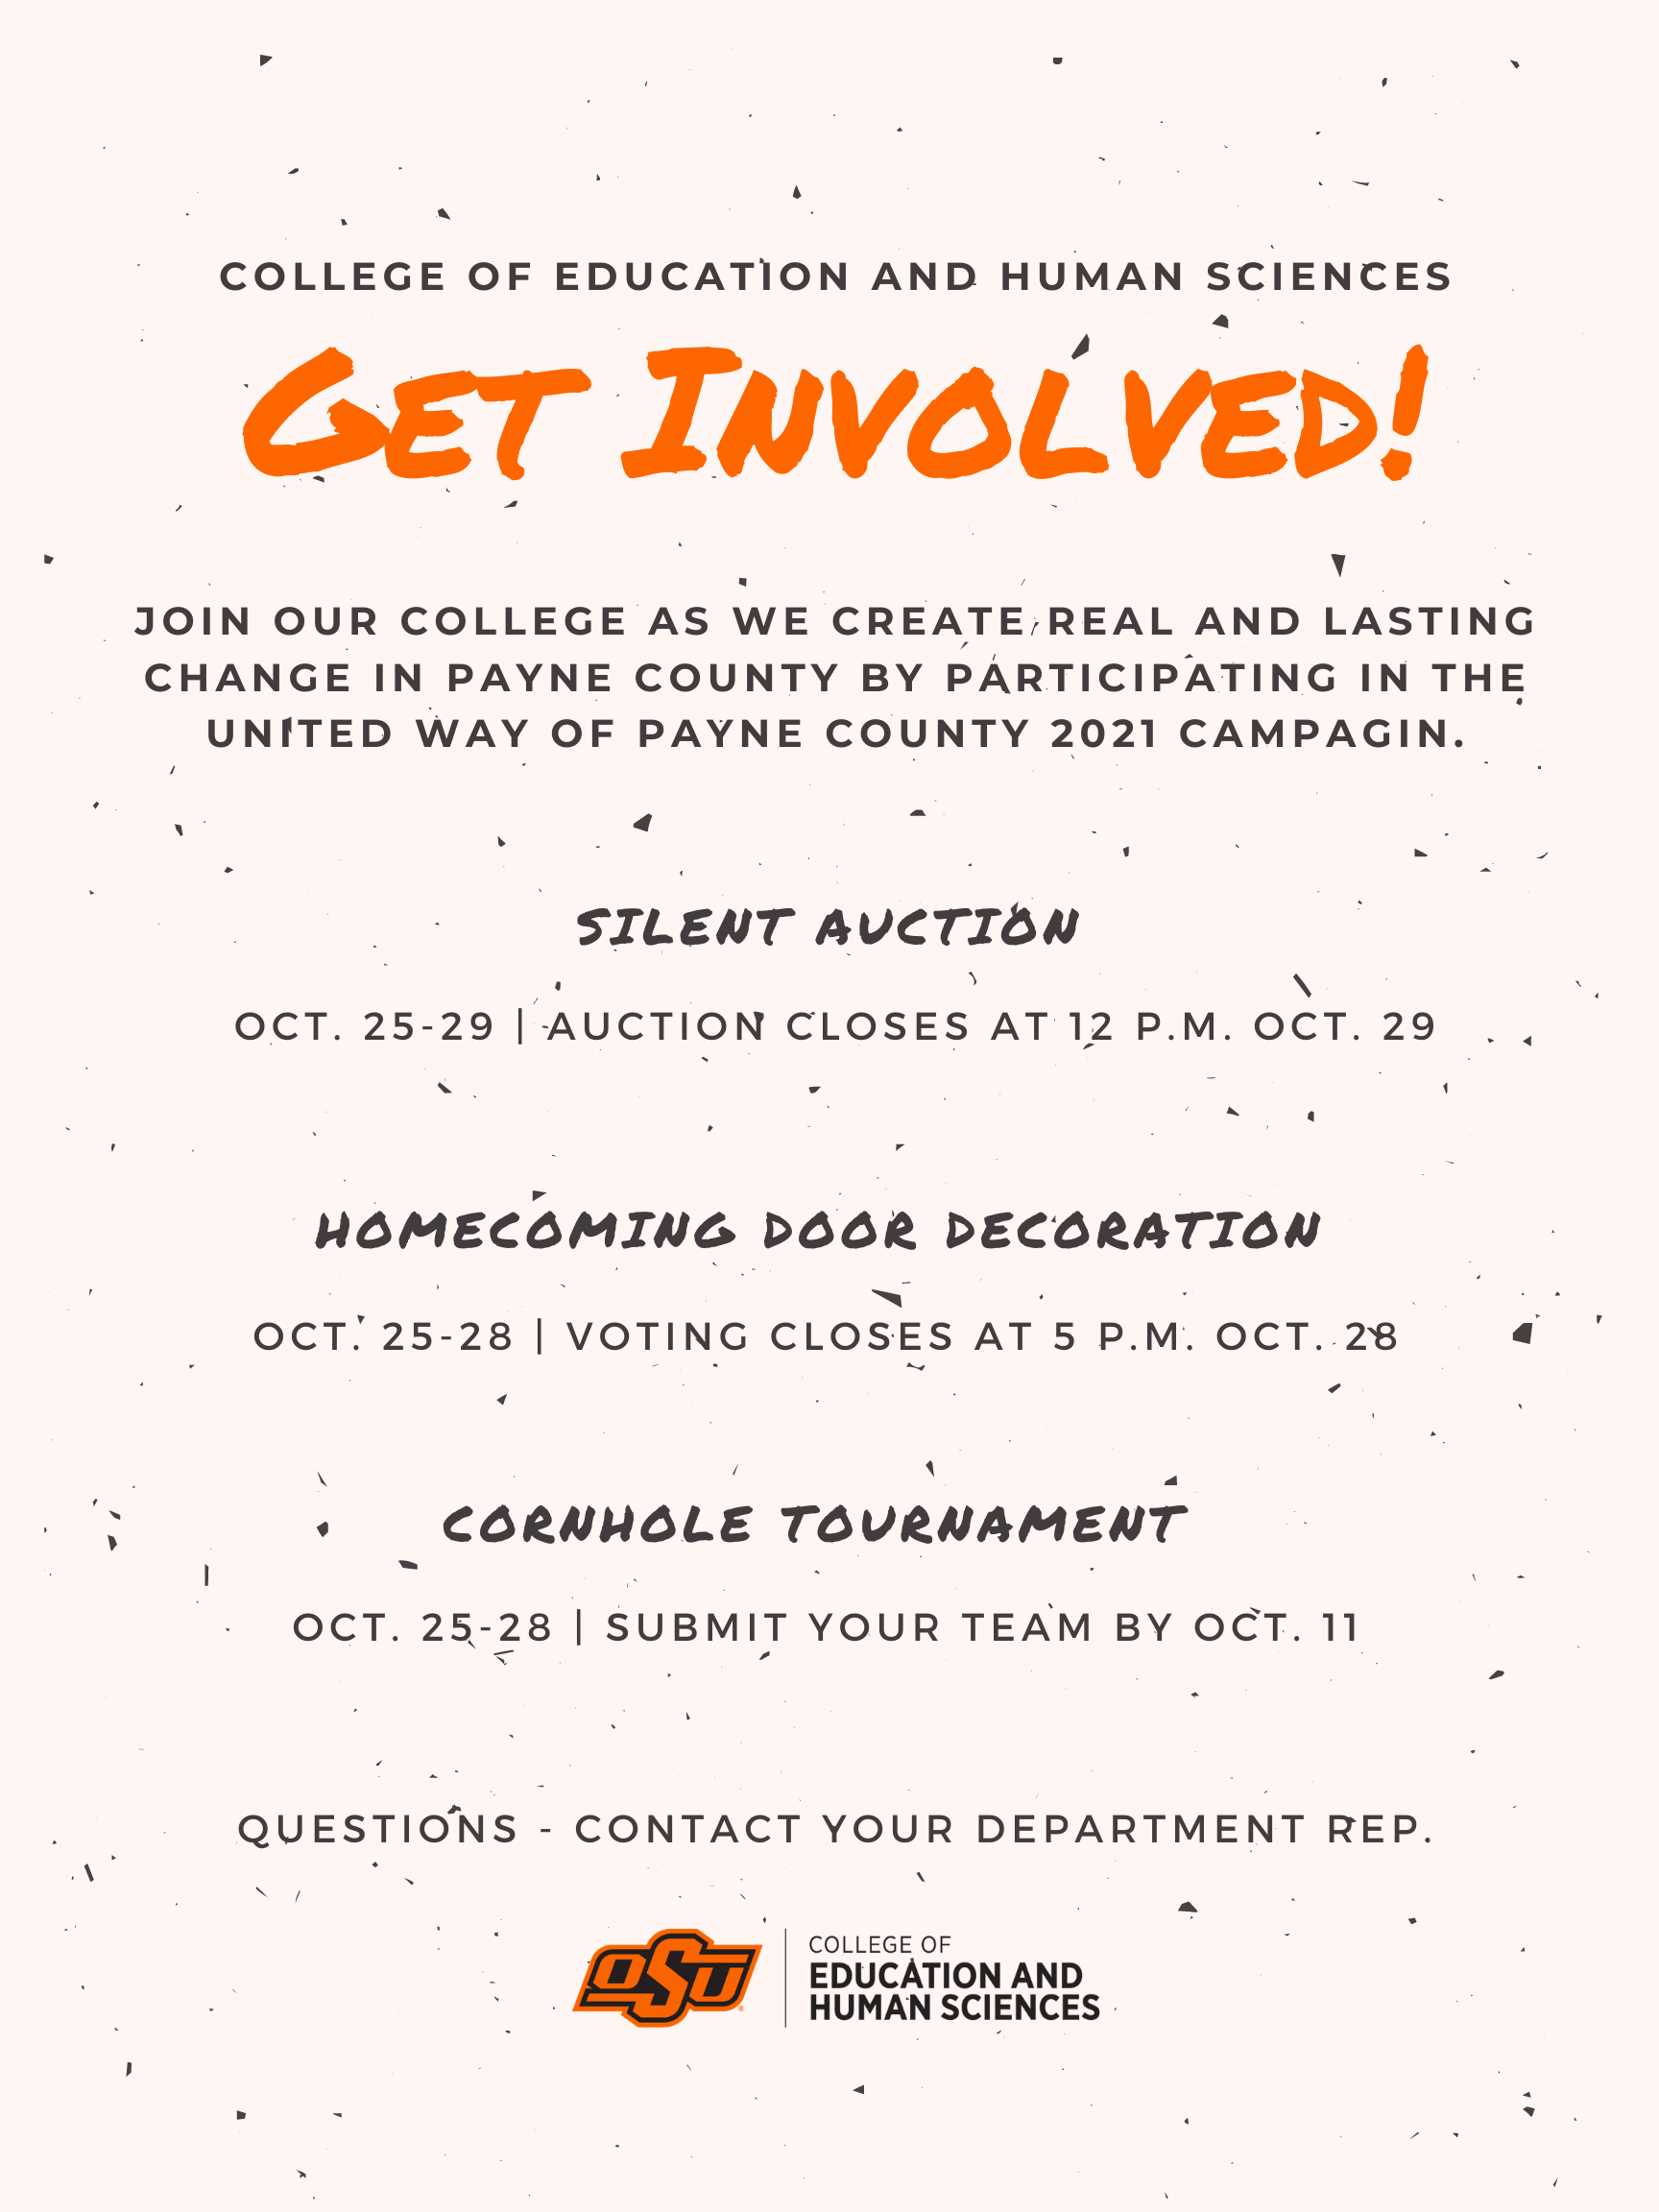 CEHS' Events for UWPC 2021 Campaign